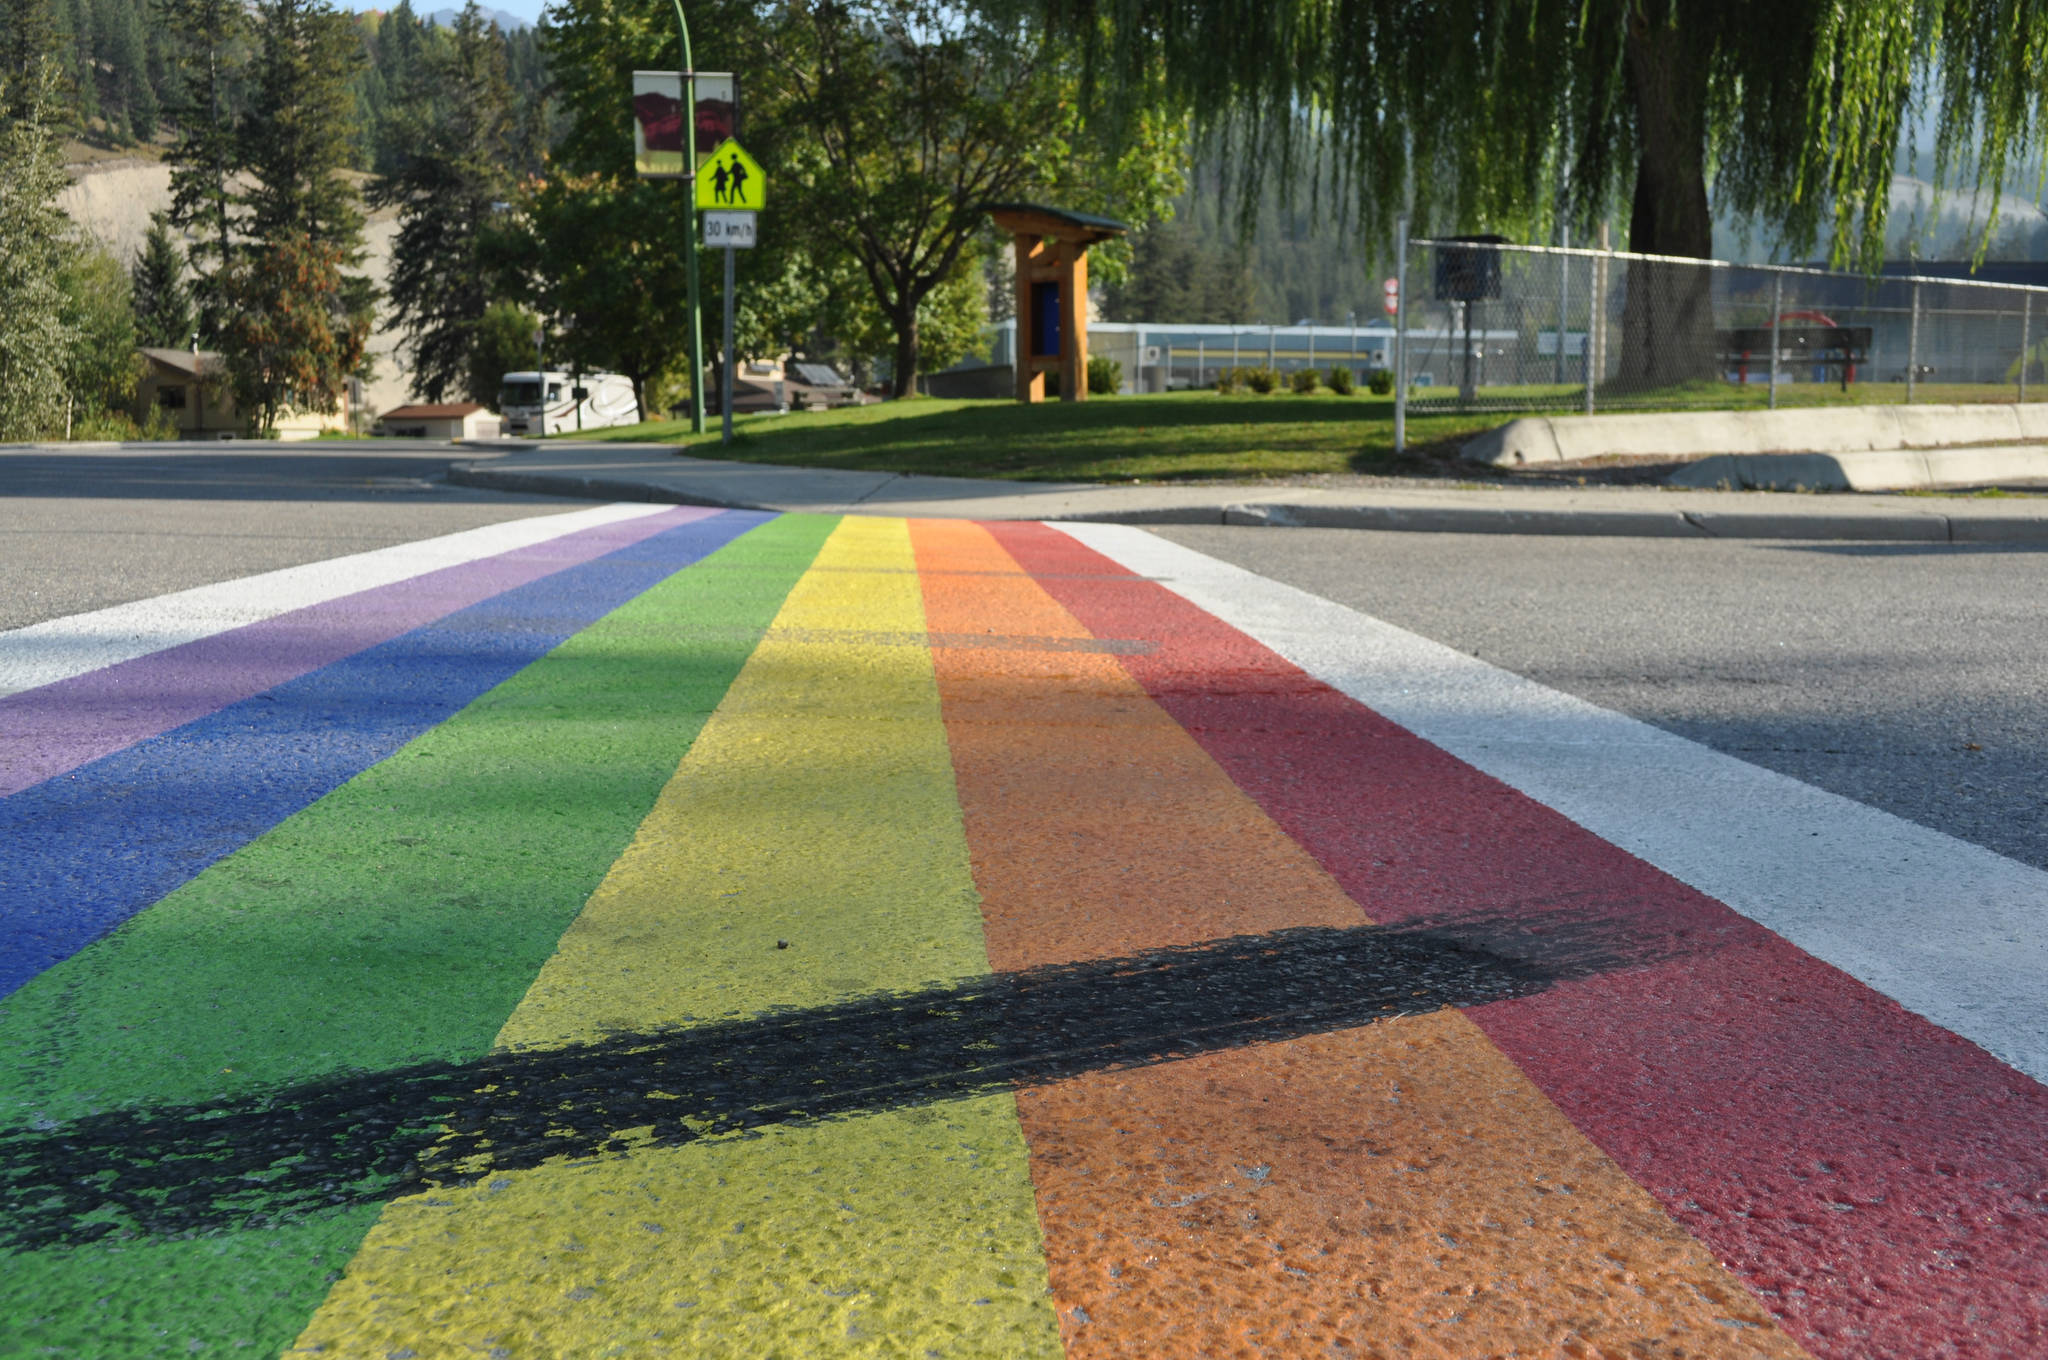 B.C. youth work to clean up burnout left on another rainbow crosswalk